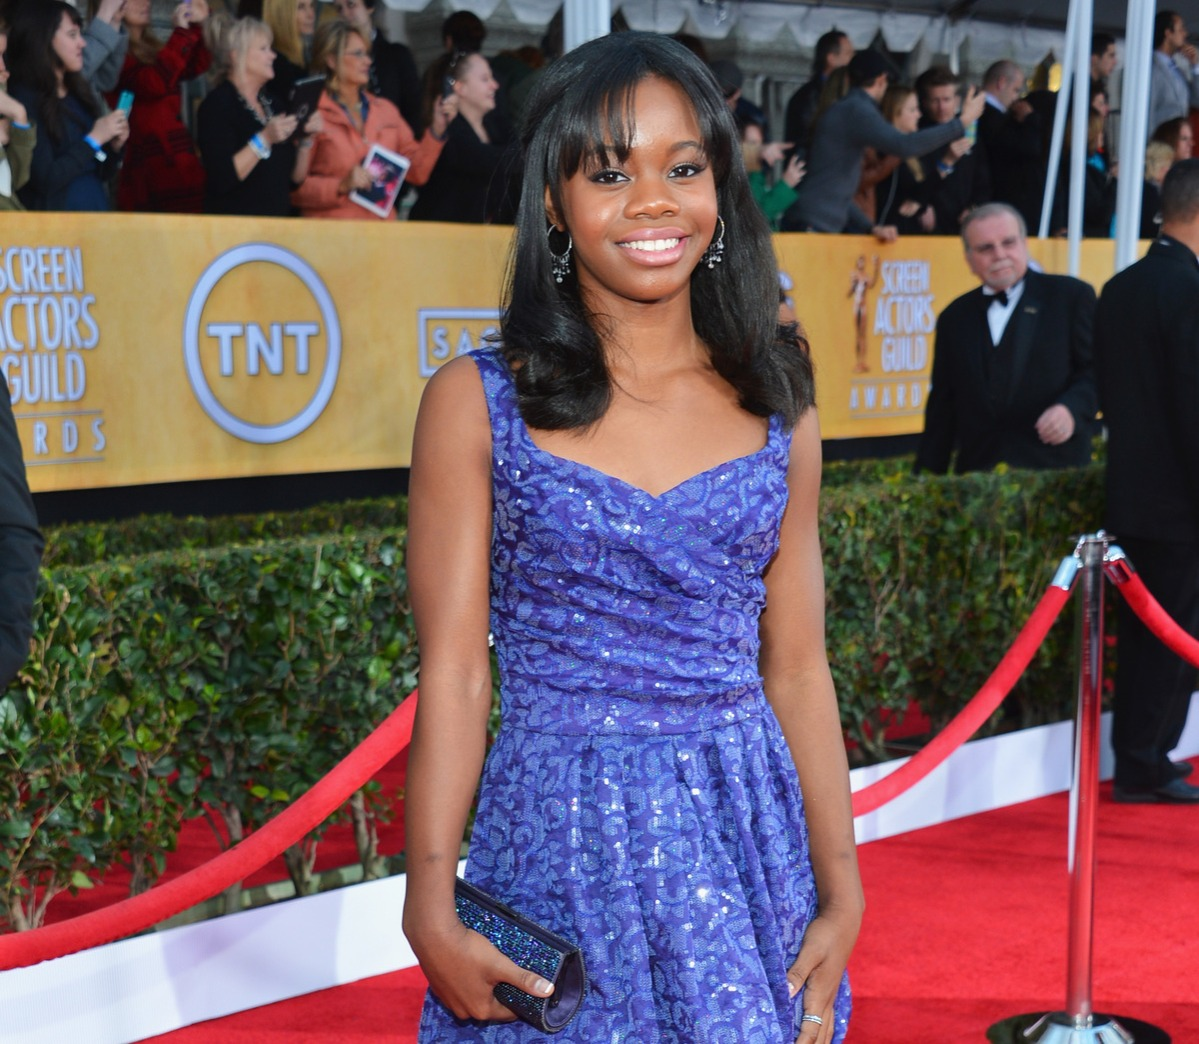 Olympic gymnast Gabby Douglas arrives at the 19th Annual Screen Actors Guild Awards